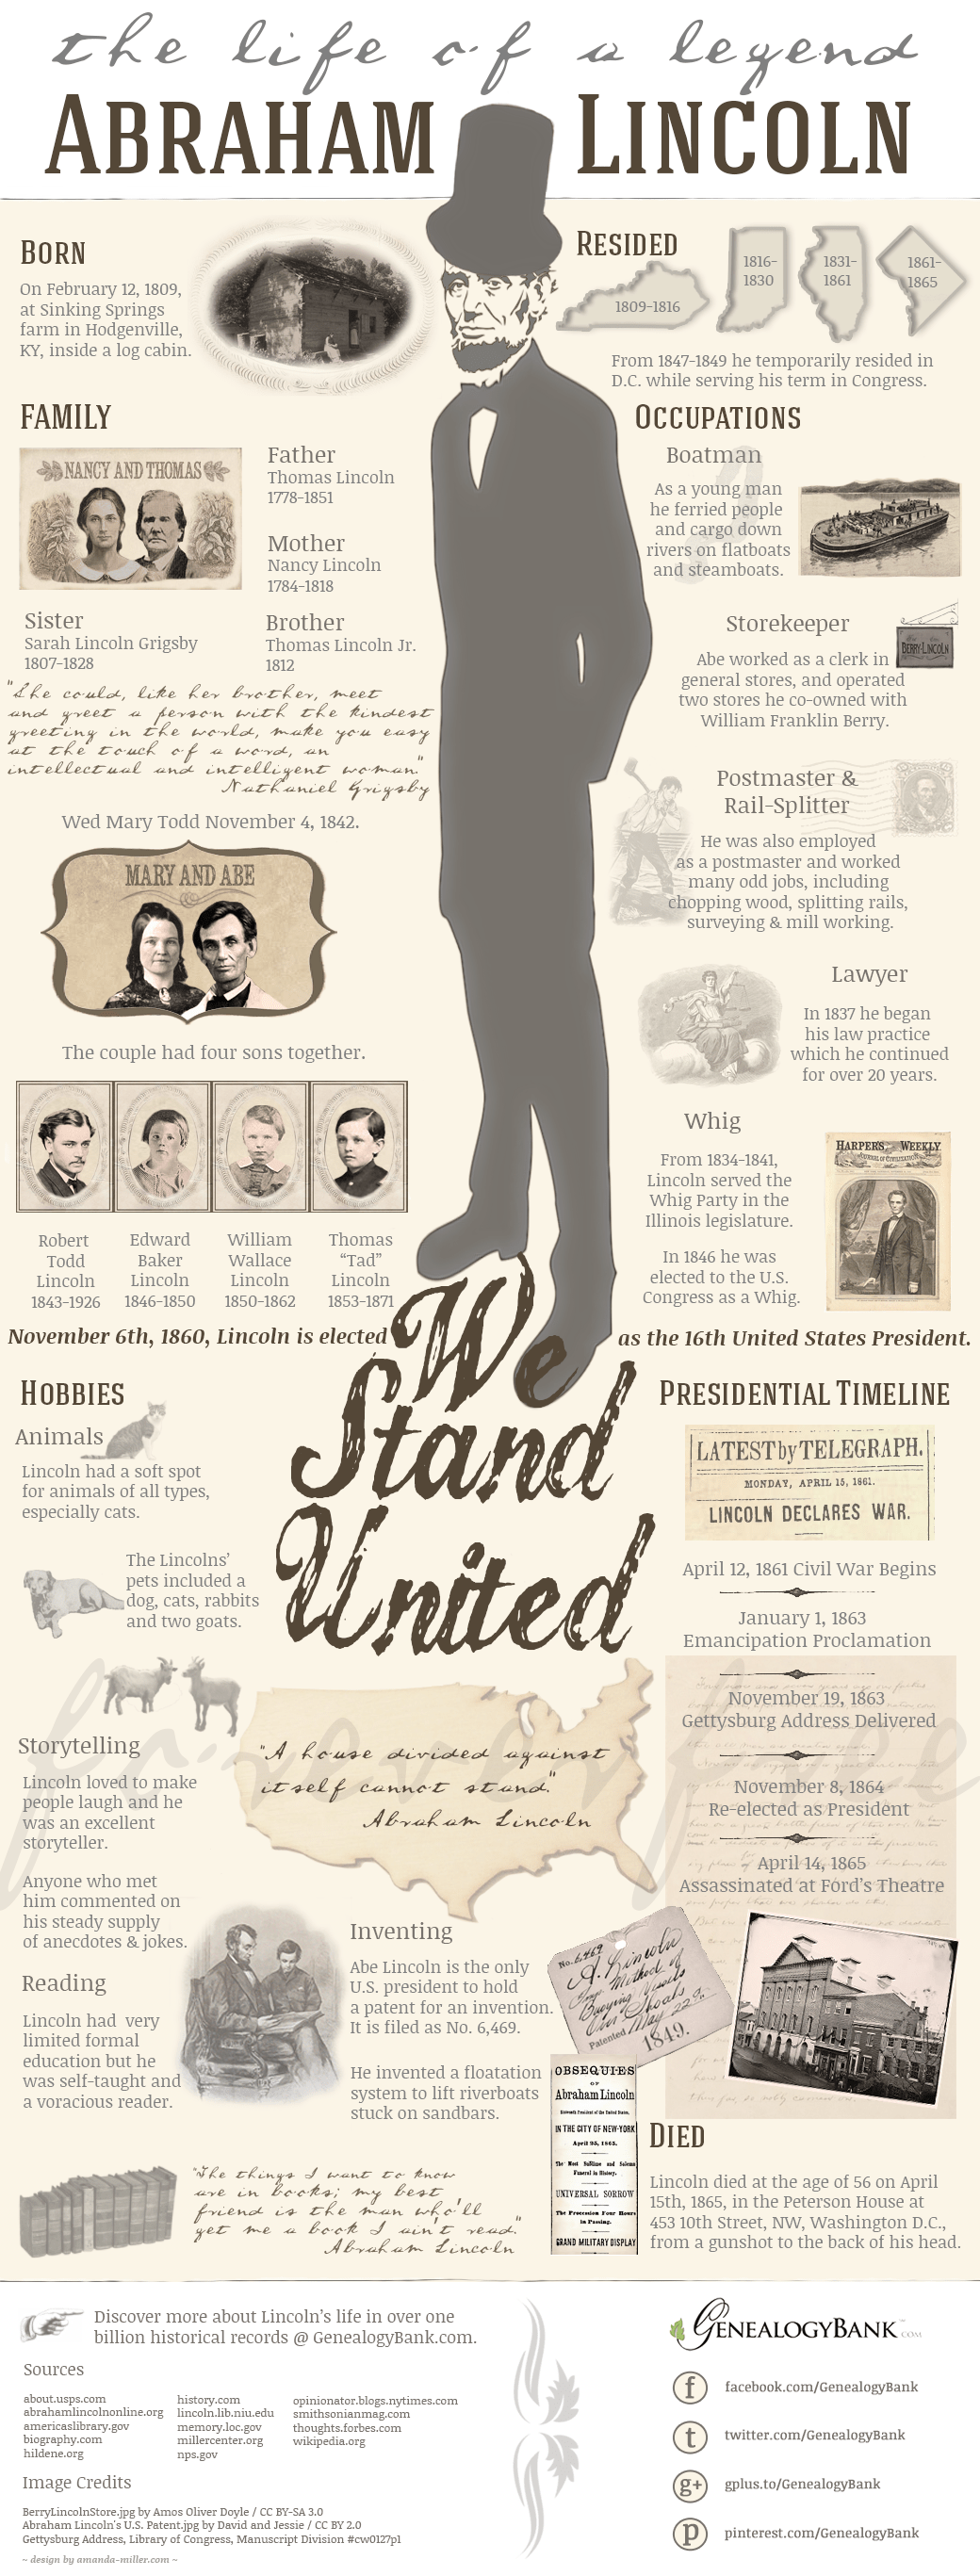 abraham-lincoln-family-tree-genealogy-infographic-large1